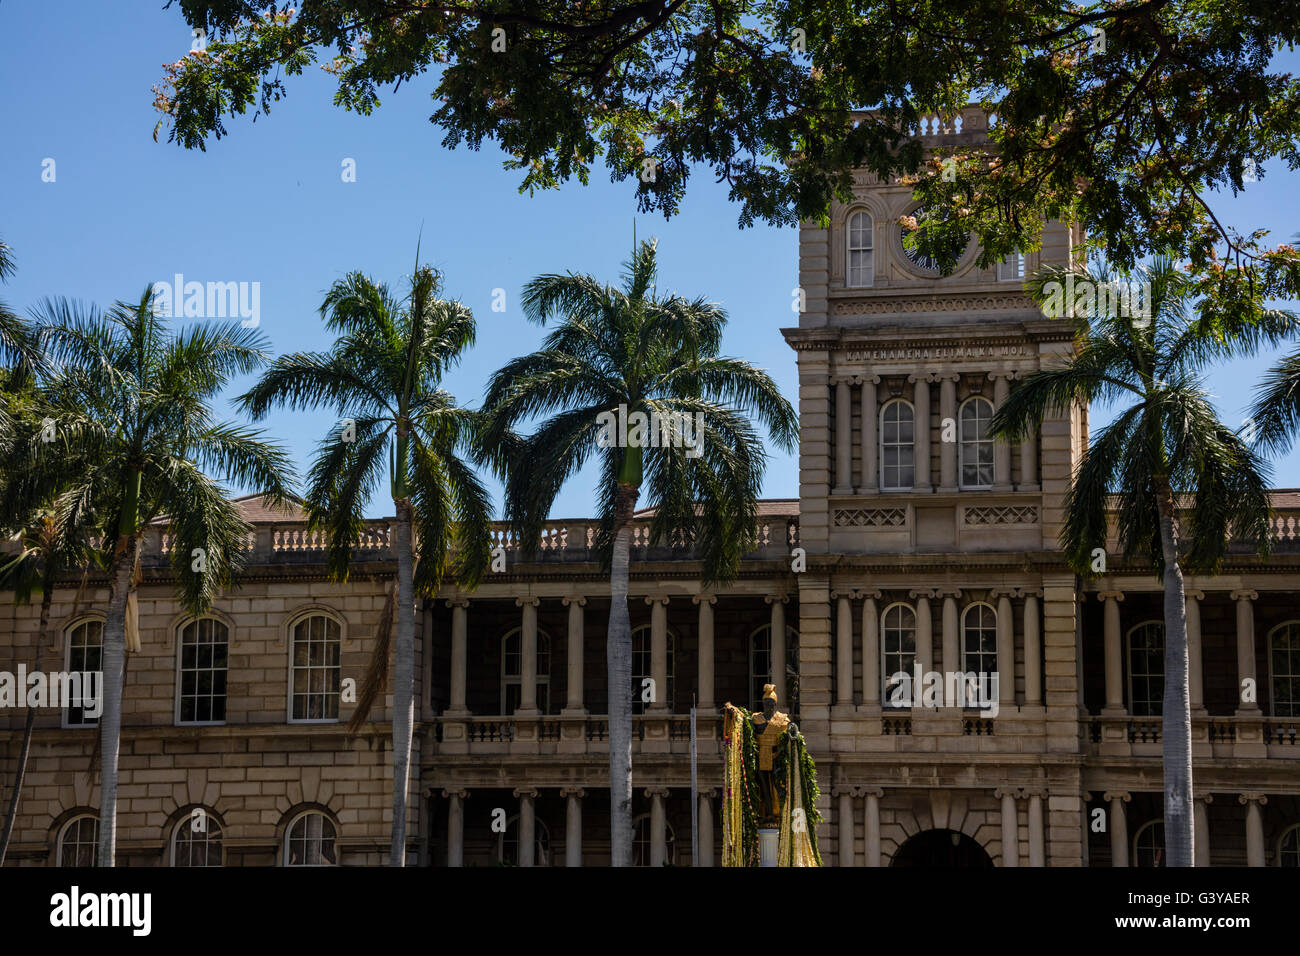 A view of the King Kamehameha Statue at the Aliʻiolani Hale. - Stock Image